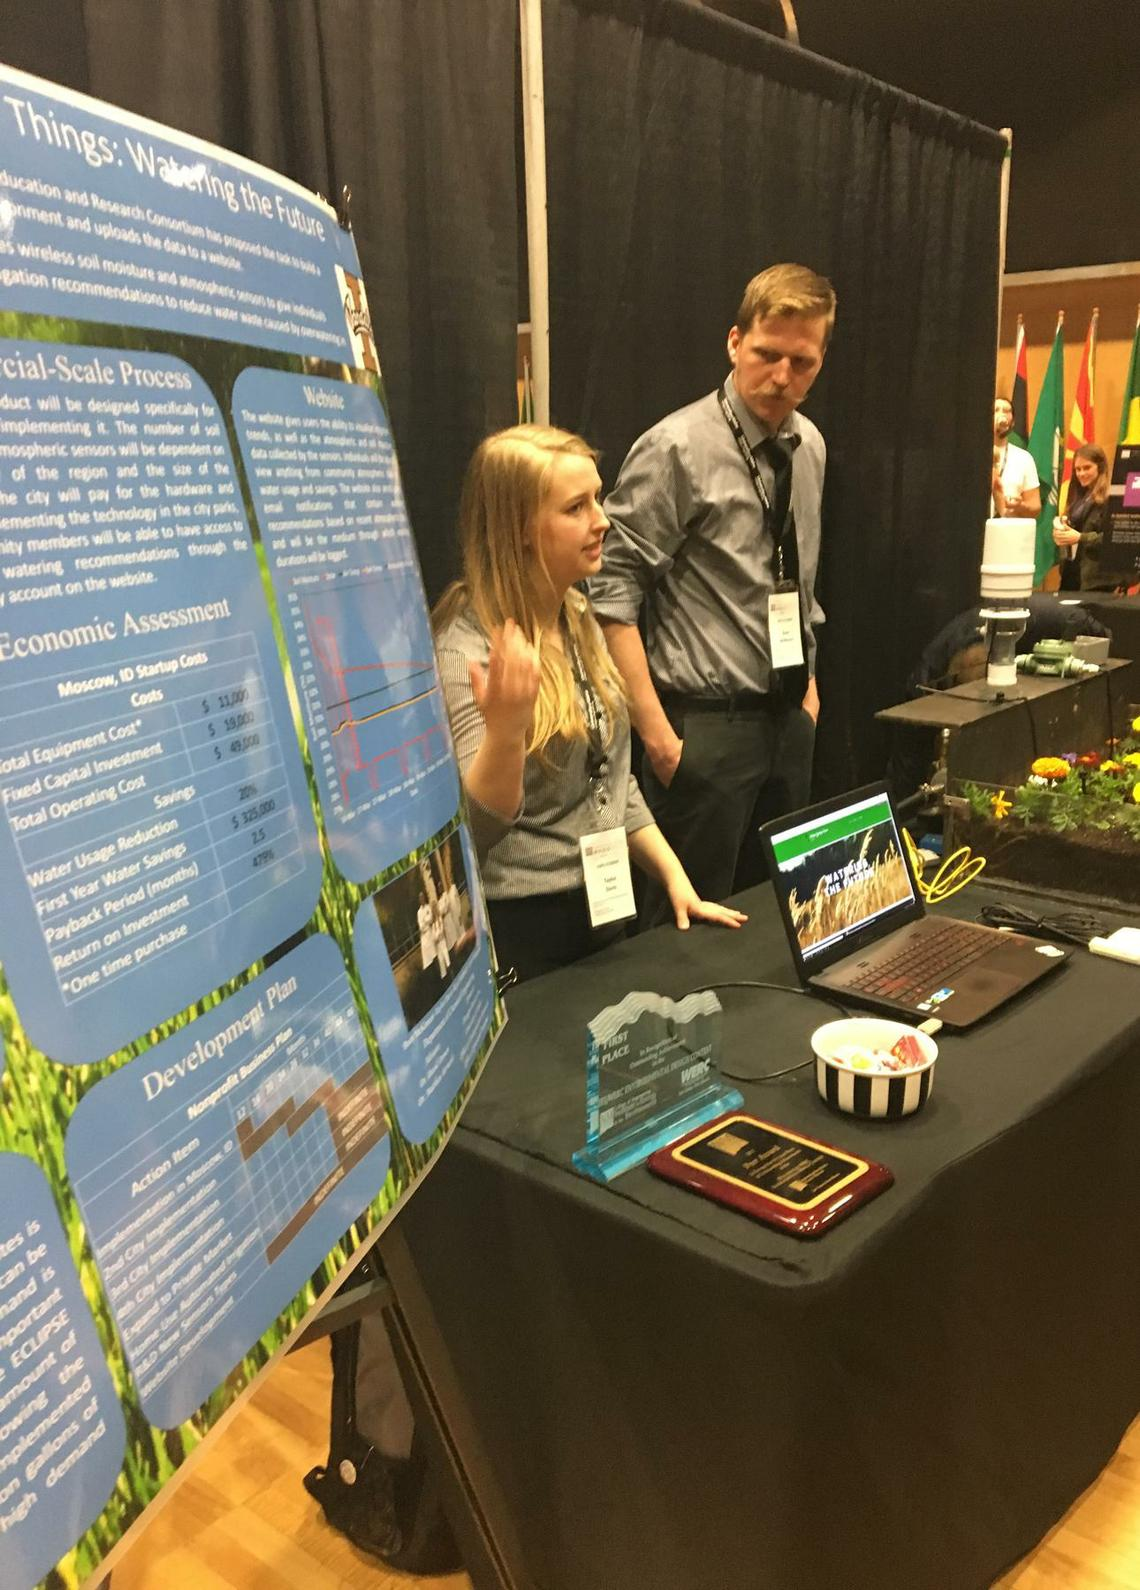 University of Idaho Engineering Design Expo provides platform for novel inventions